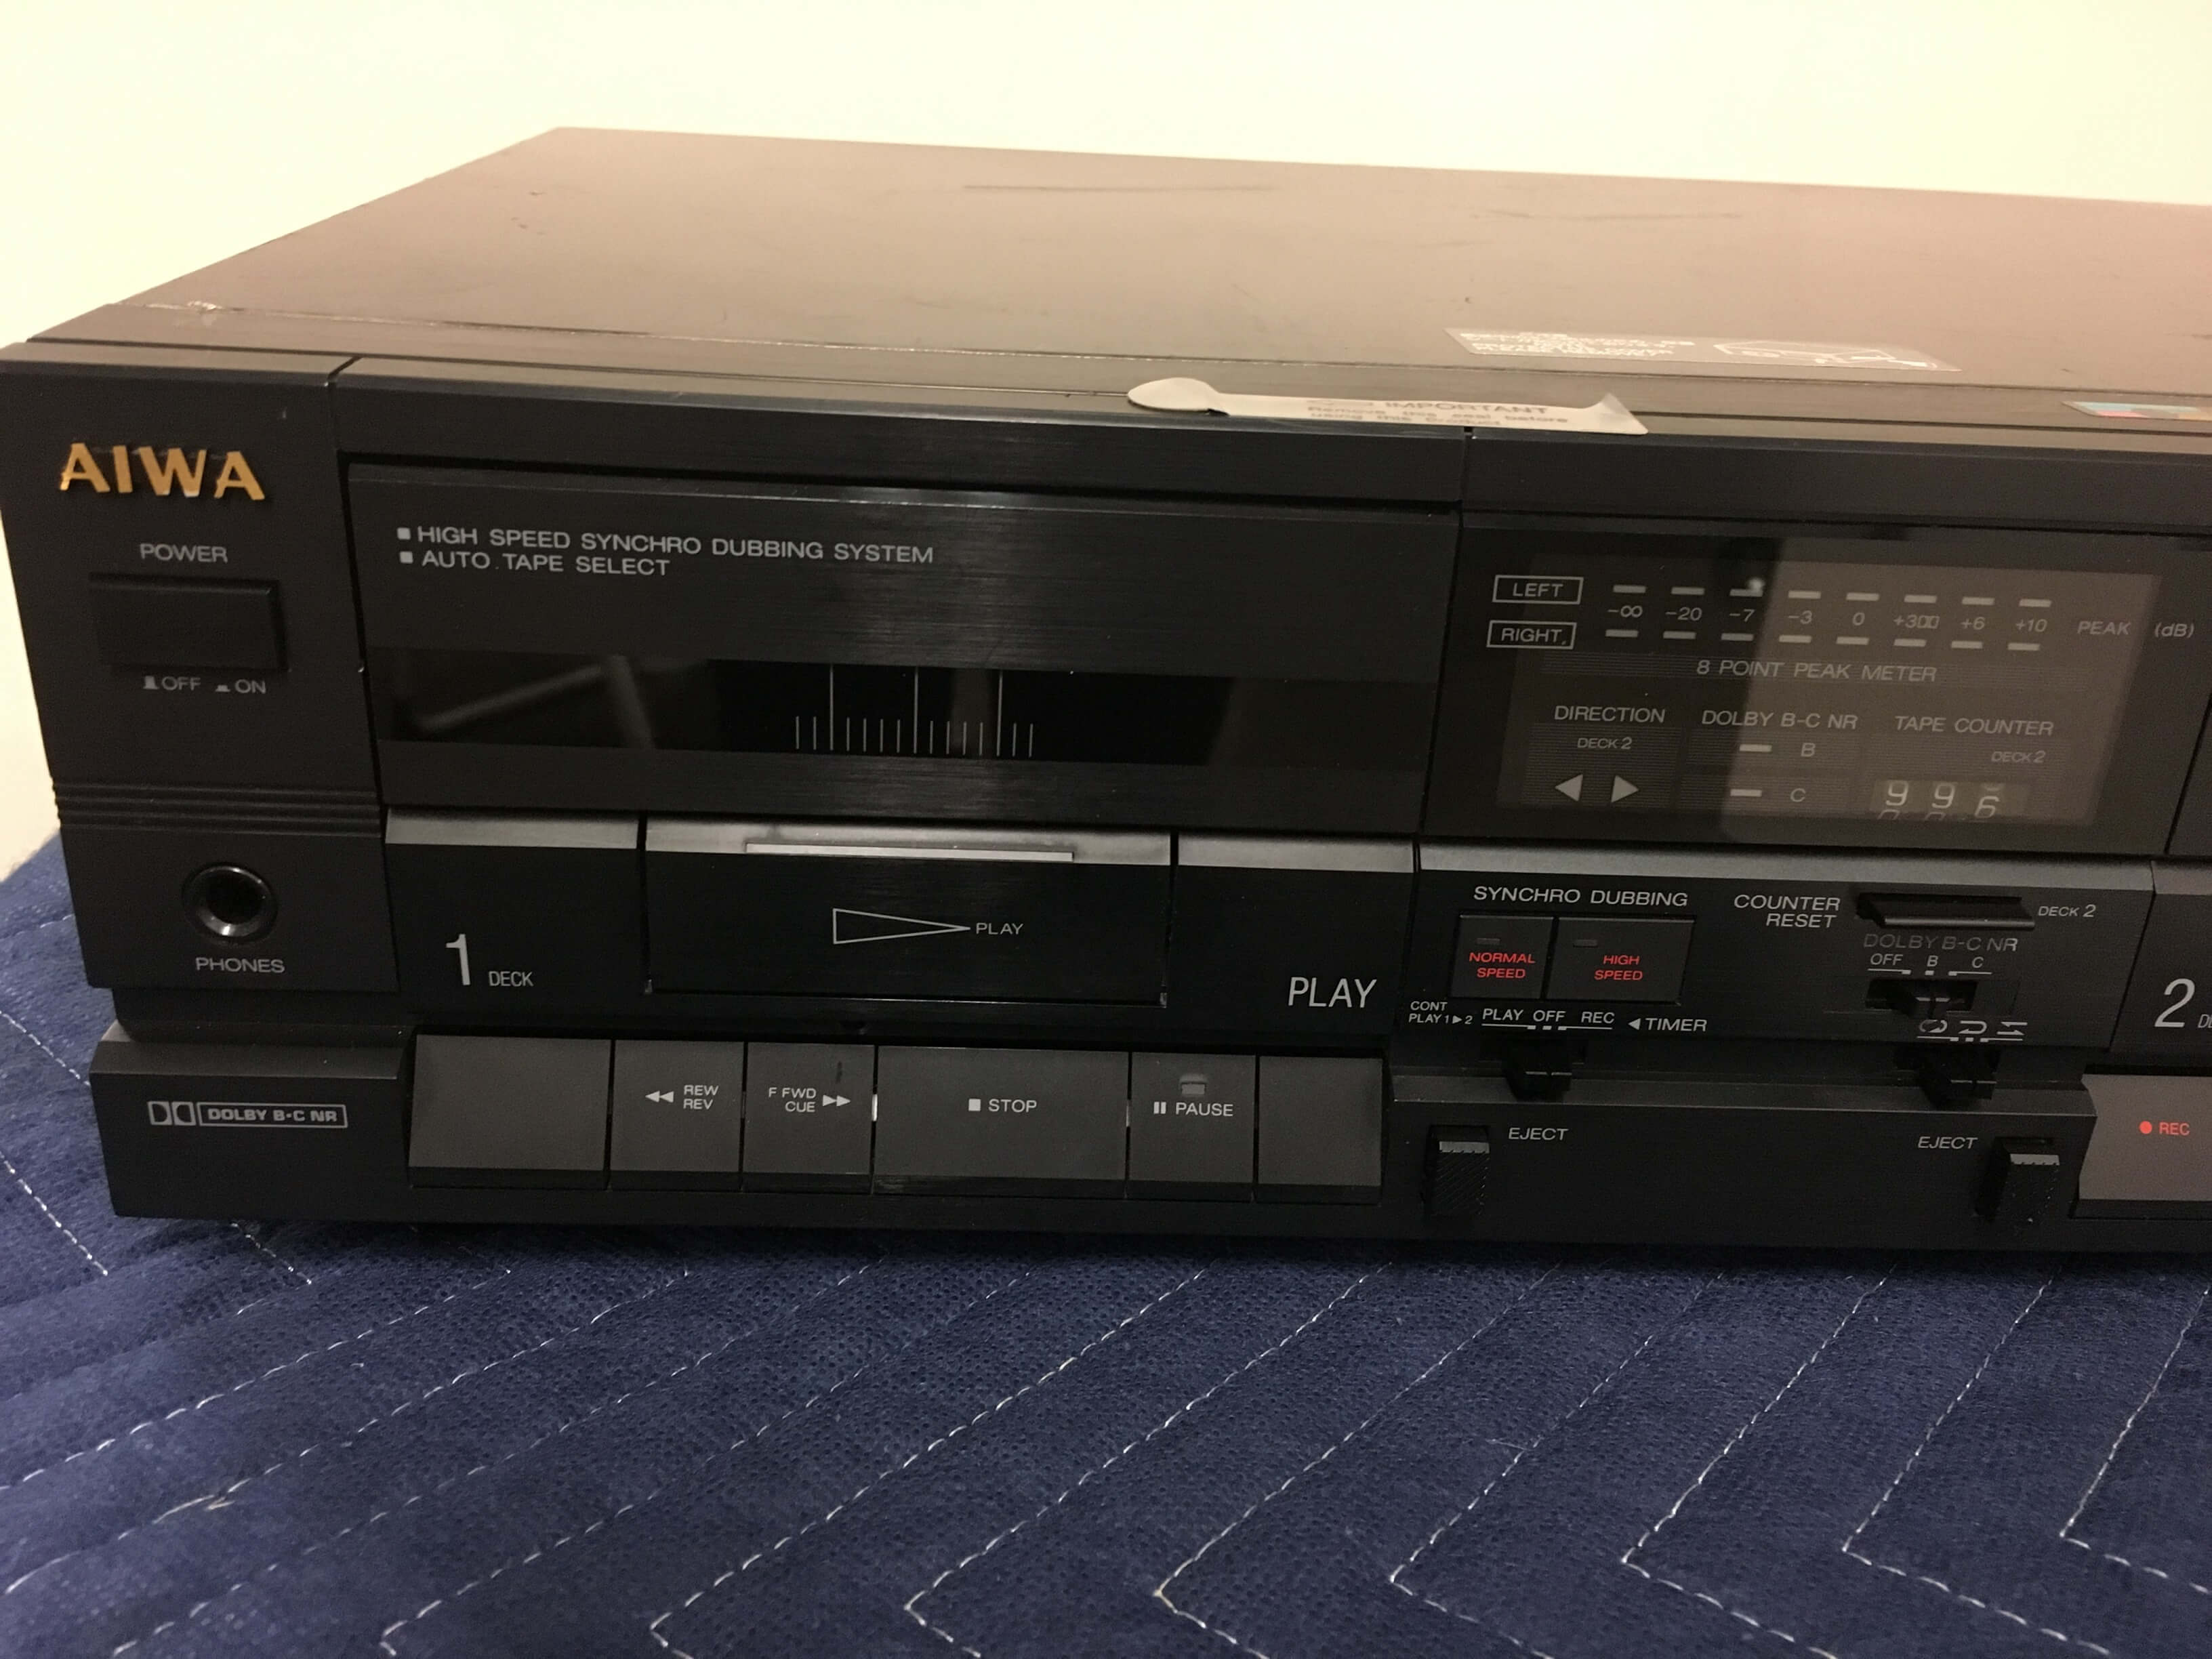 AIWA AD-WX707 dual well stereo cassette deck